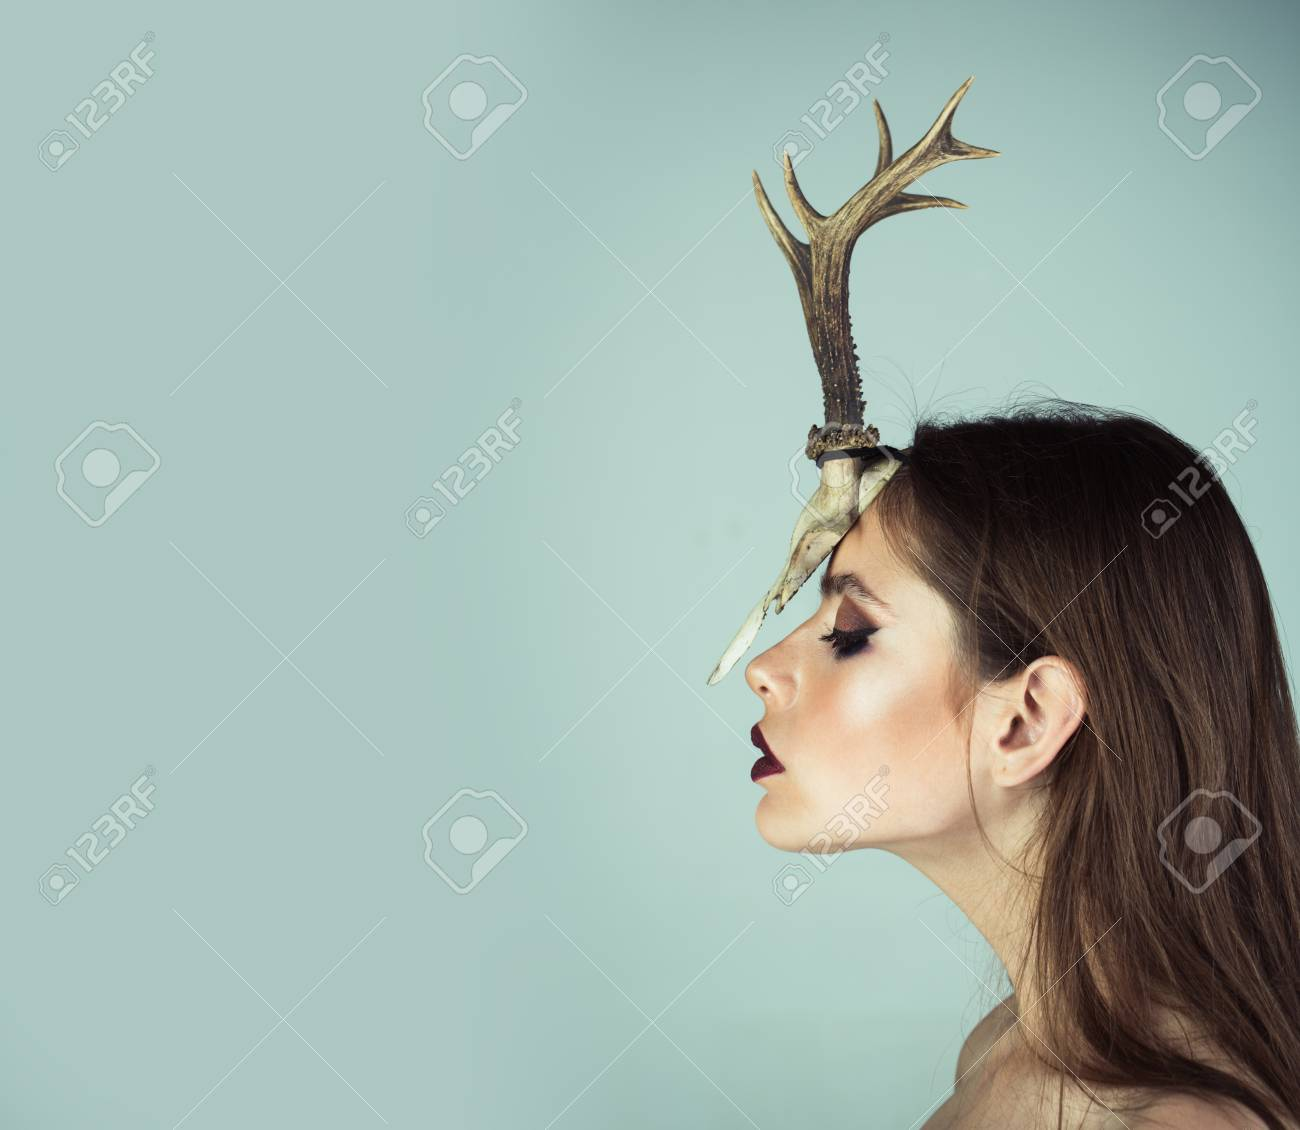 and antlers fashion devil of mystic shaman girl with horns beauty look and cosmetics for skincare dark fantasy creature elf on halloween in skull